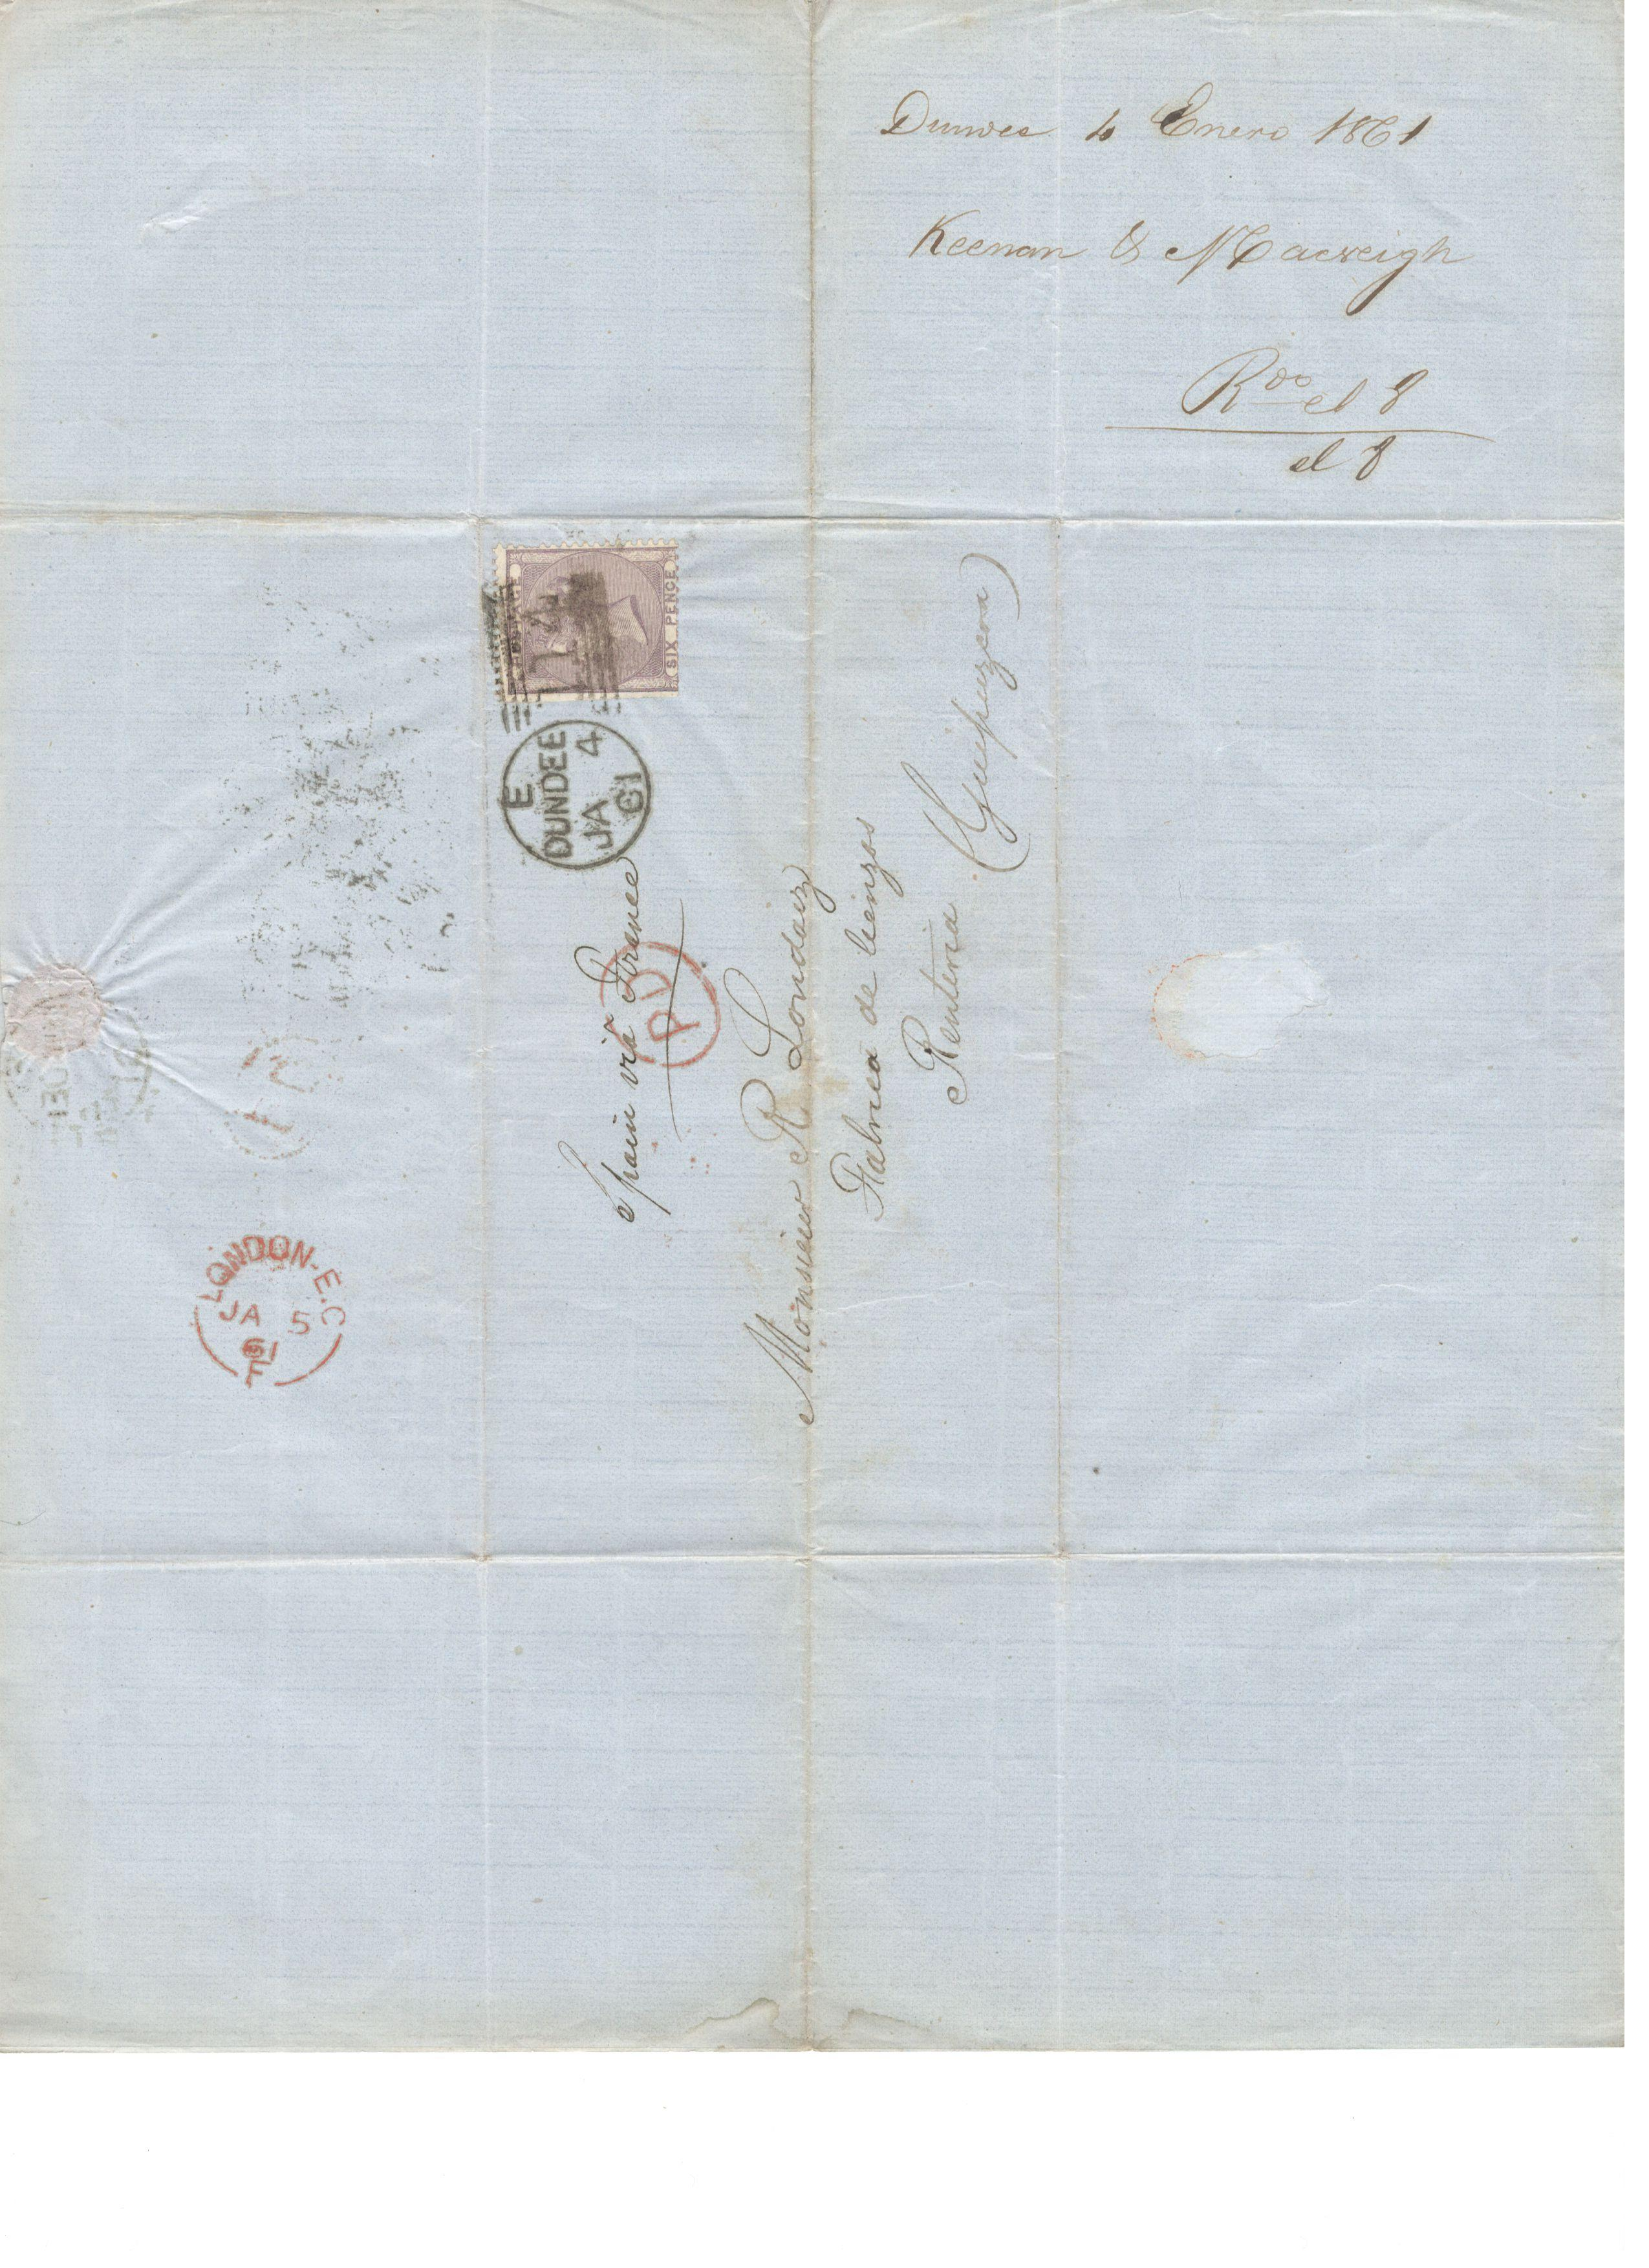 Lot 42 - ENTIRE SEND TO DUNDEE 1861 WITH SIX PENCE STAMP